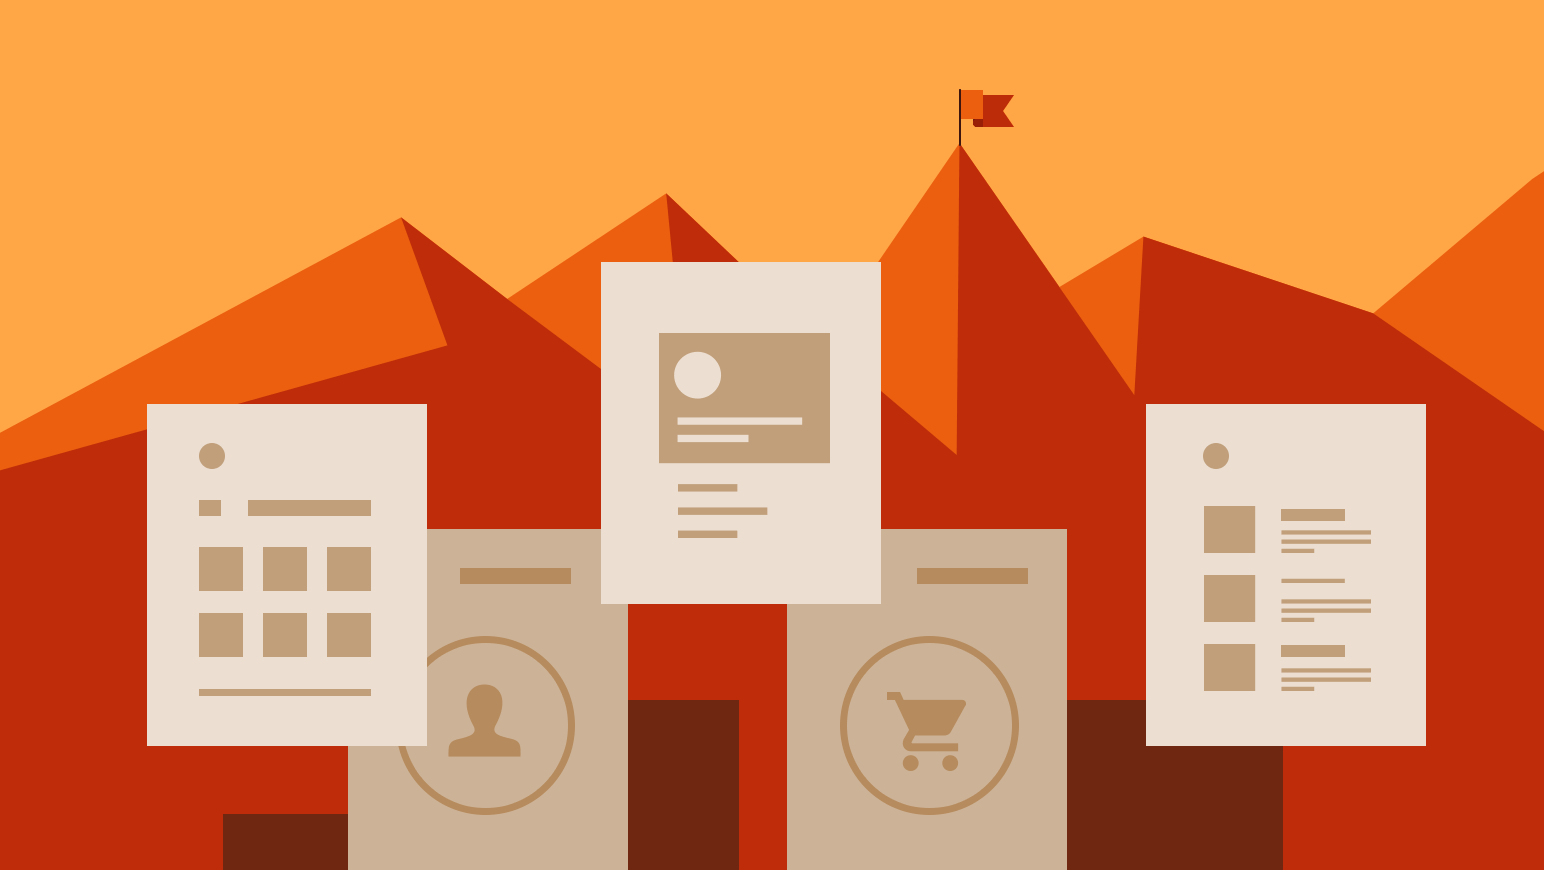 Five common WordPress page layouts are shown as illustrations.